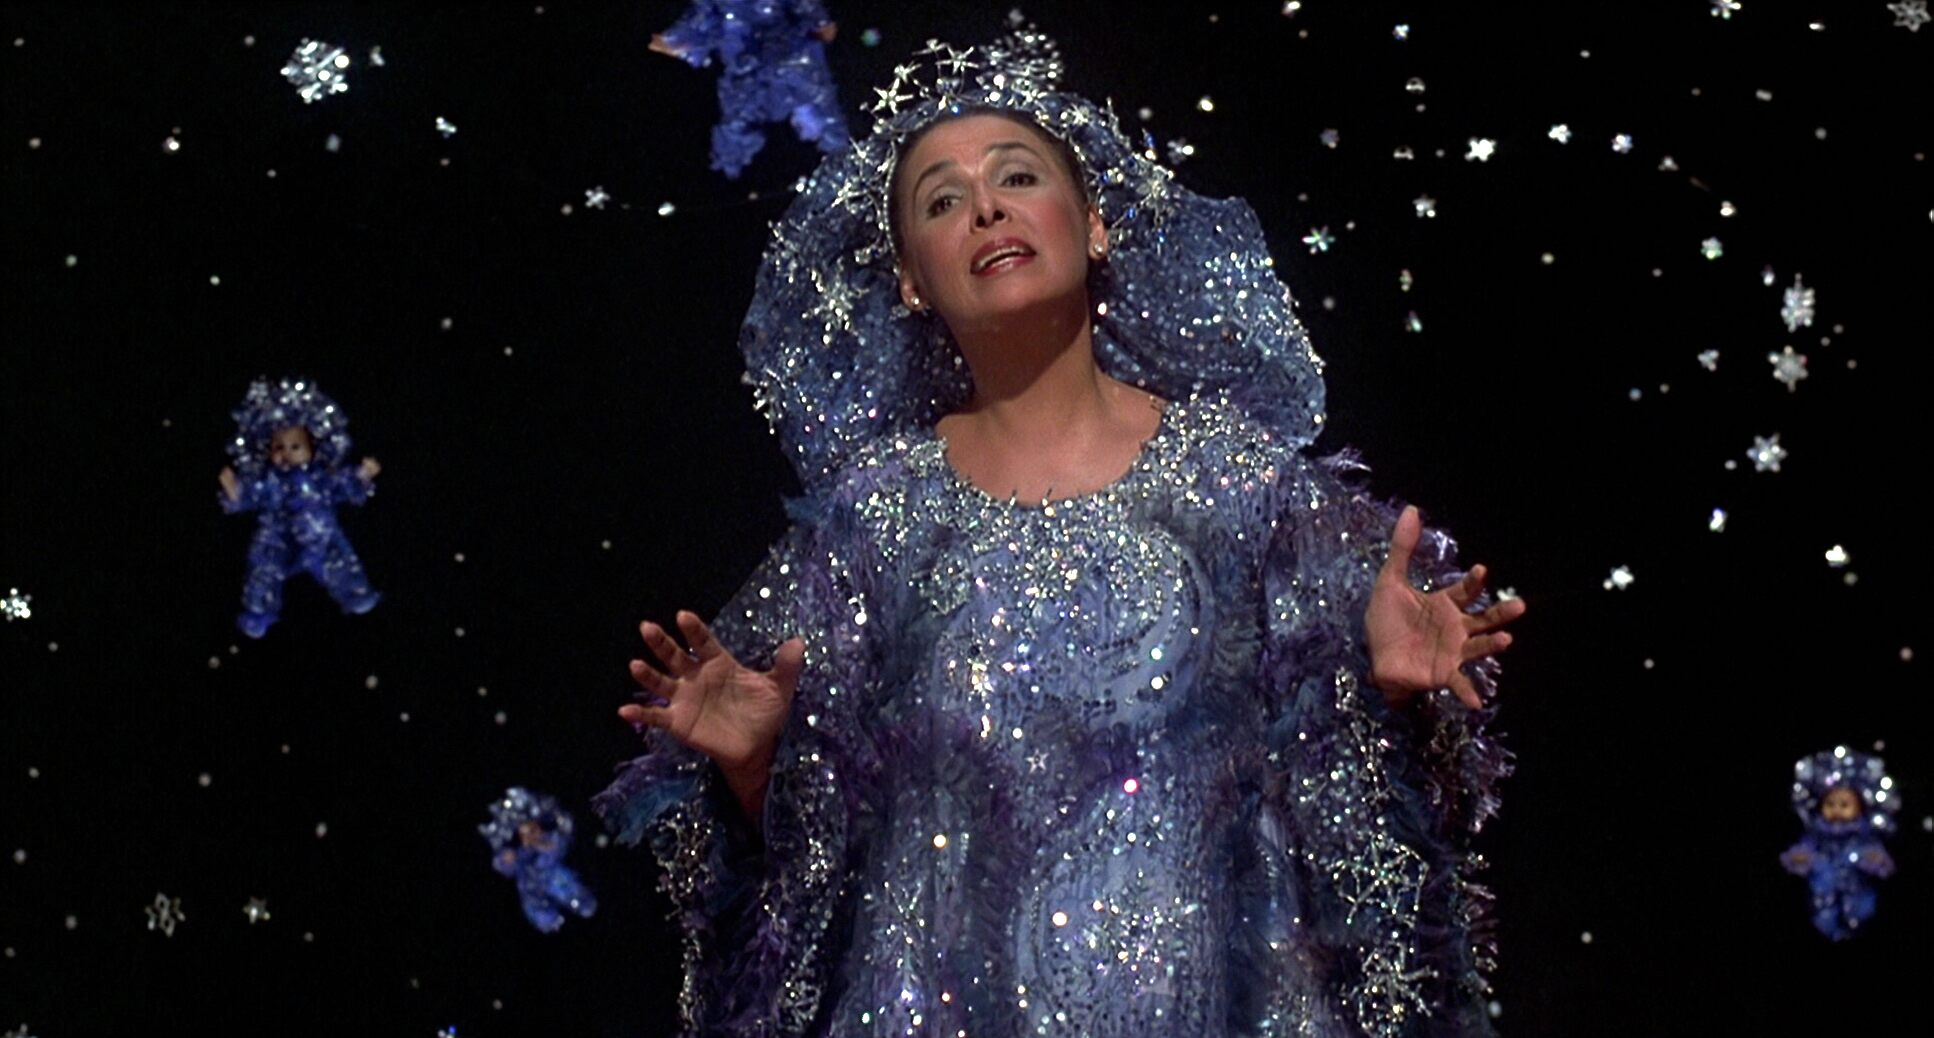 Lena Horne as Glinda the Good